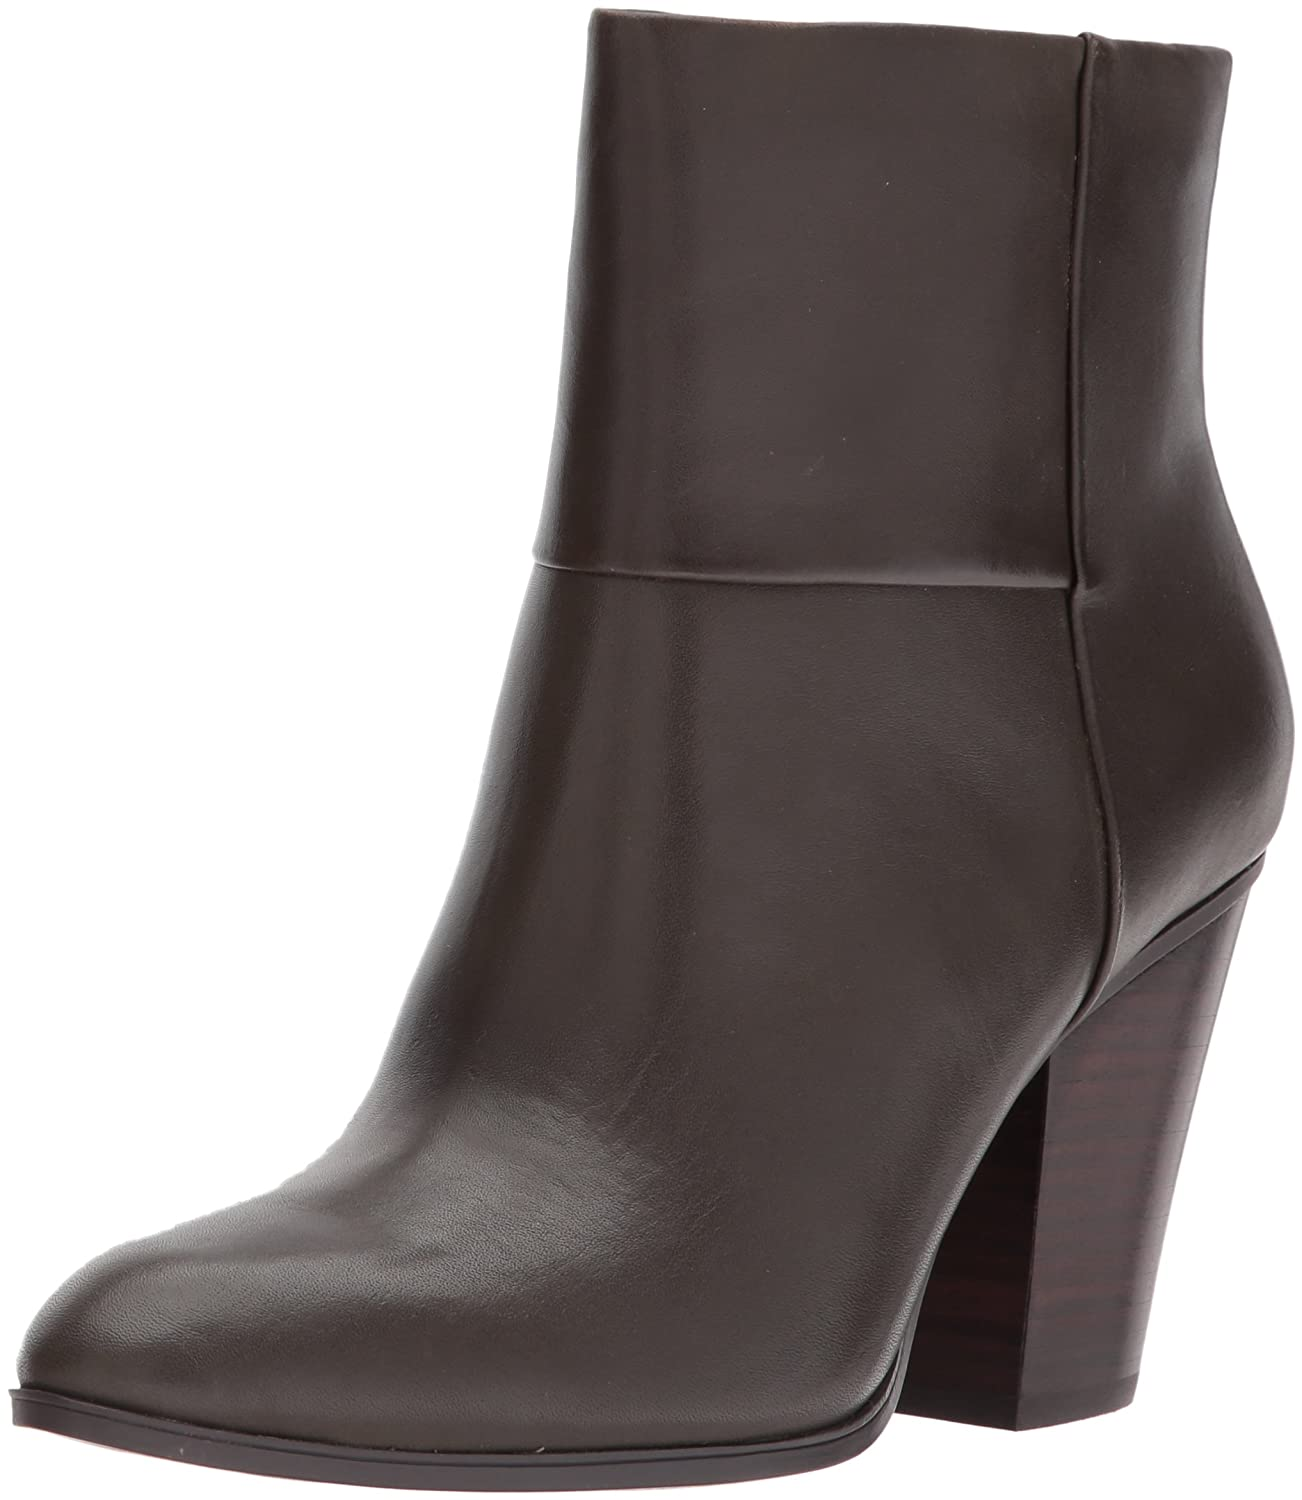 Nine West Women's Hollie Leather Ankle Boot B071Z3PZBZ 6.5 B(M) US|Natural Leather Leather